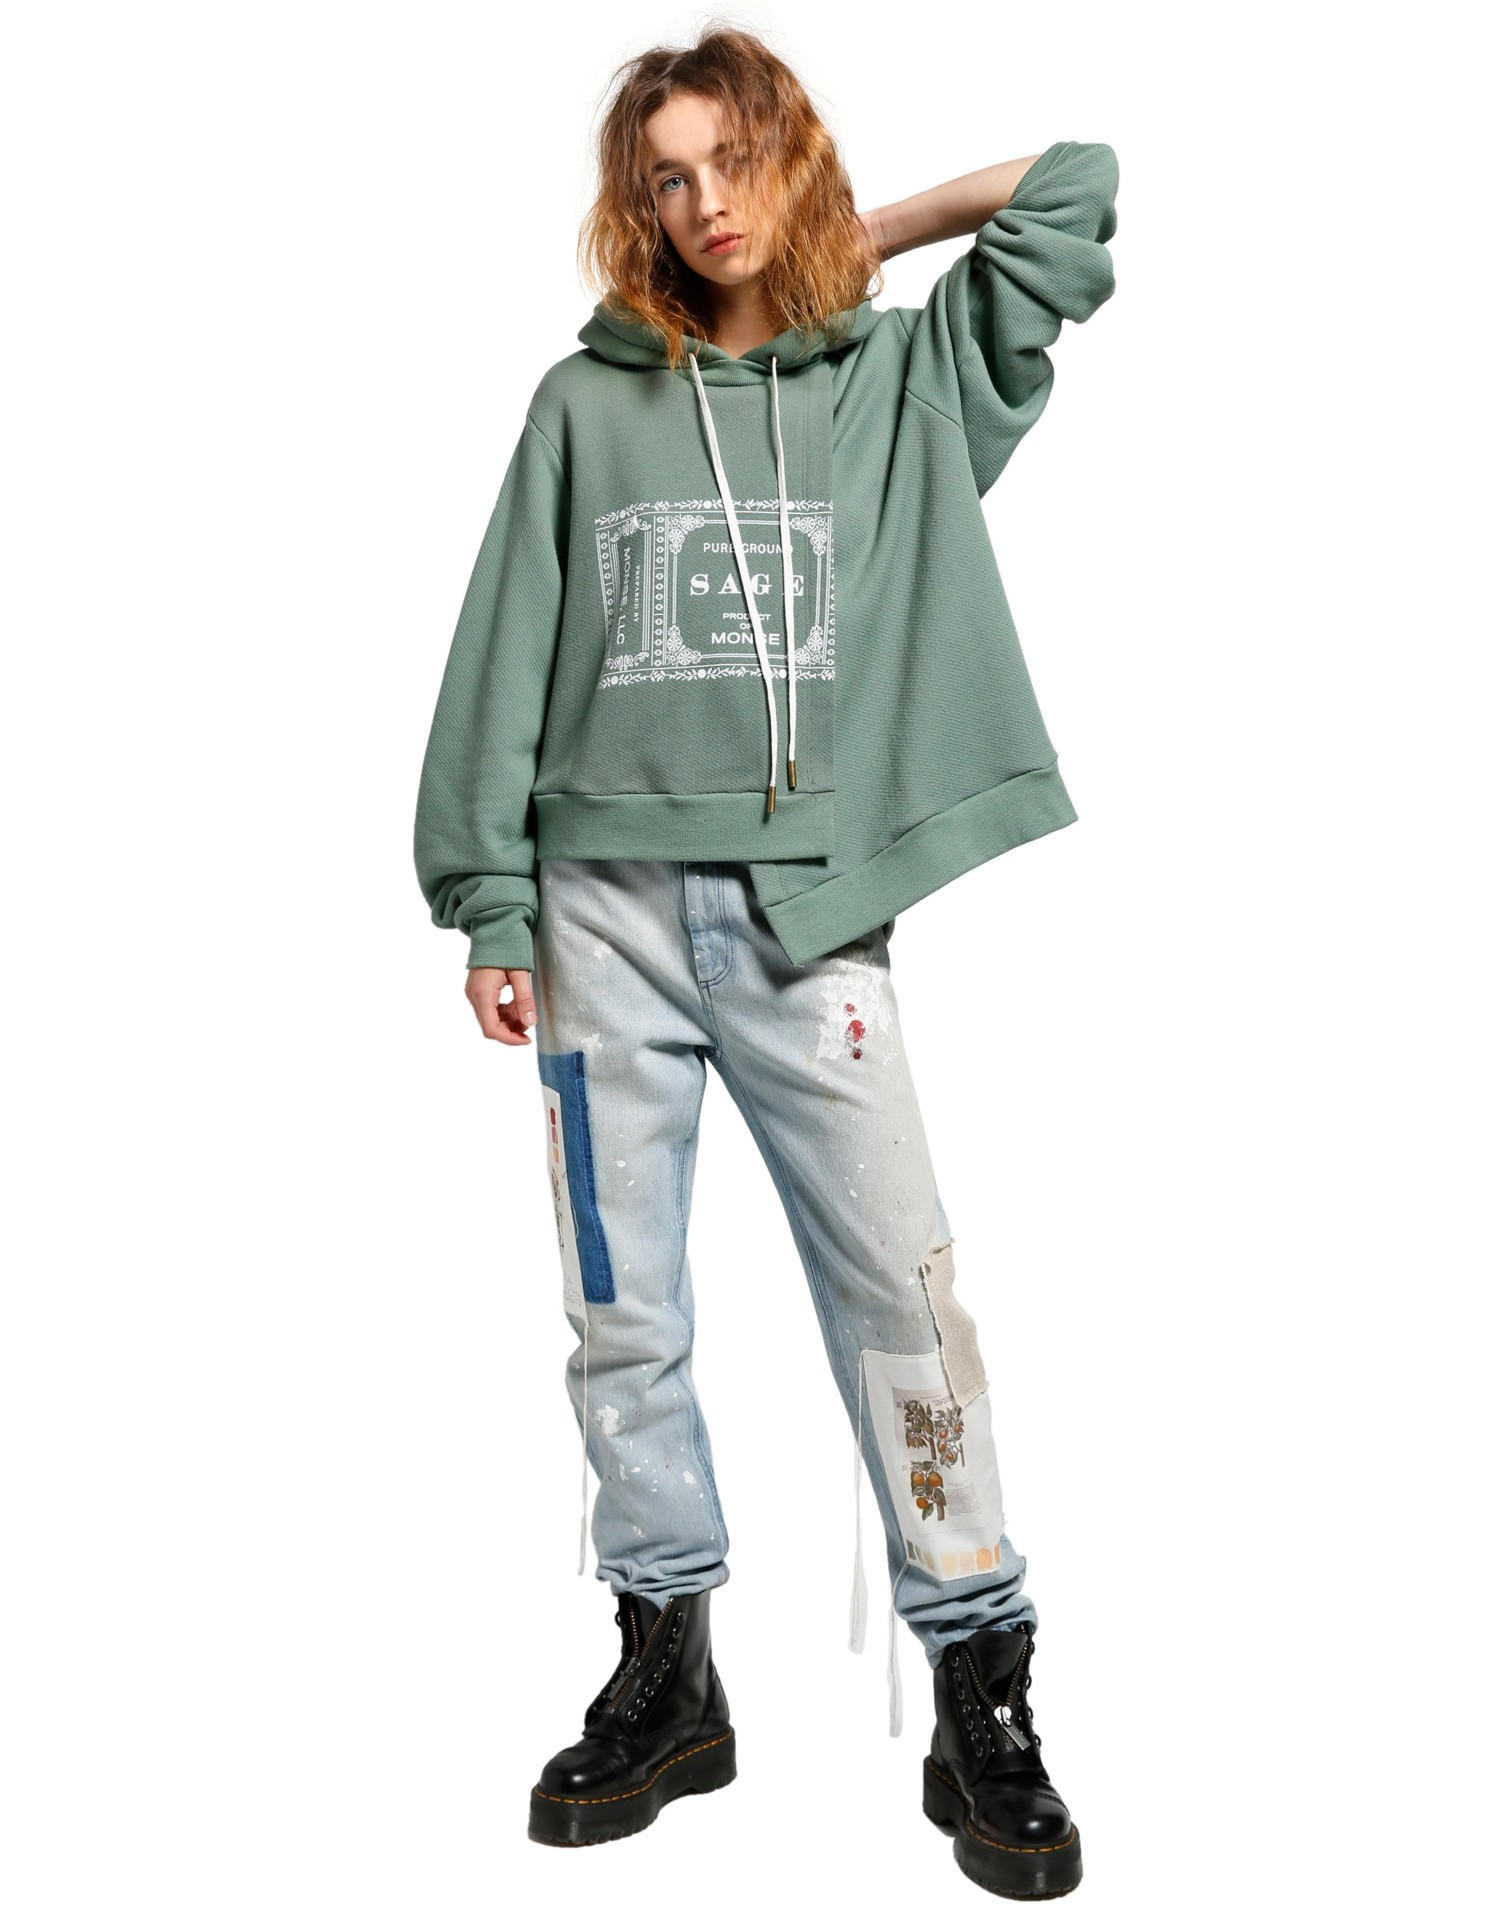 MONSE Sage Double Layer Hoodie on Model Front View